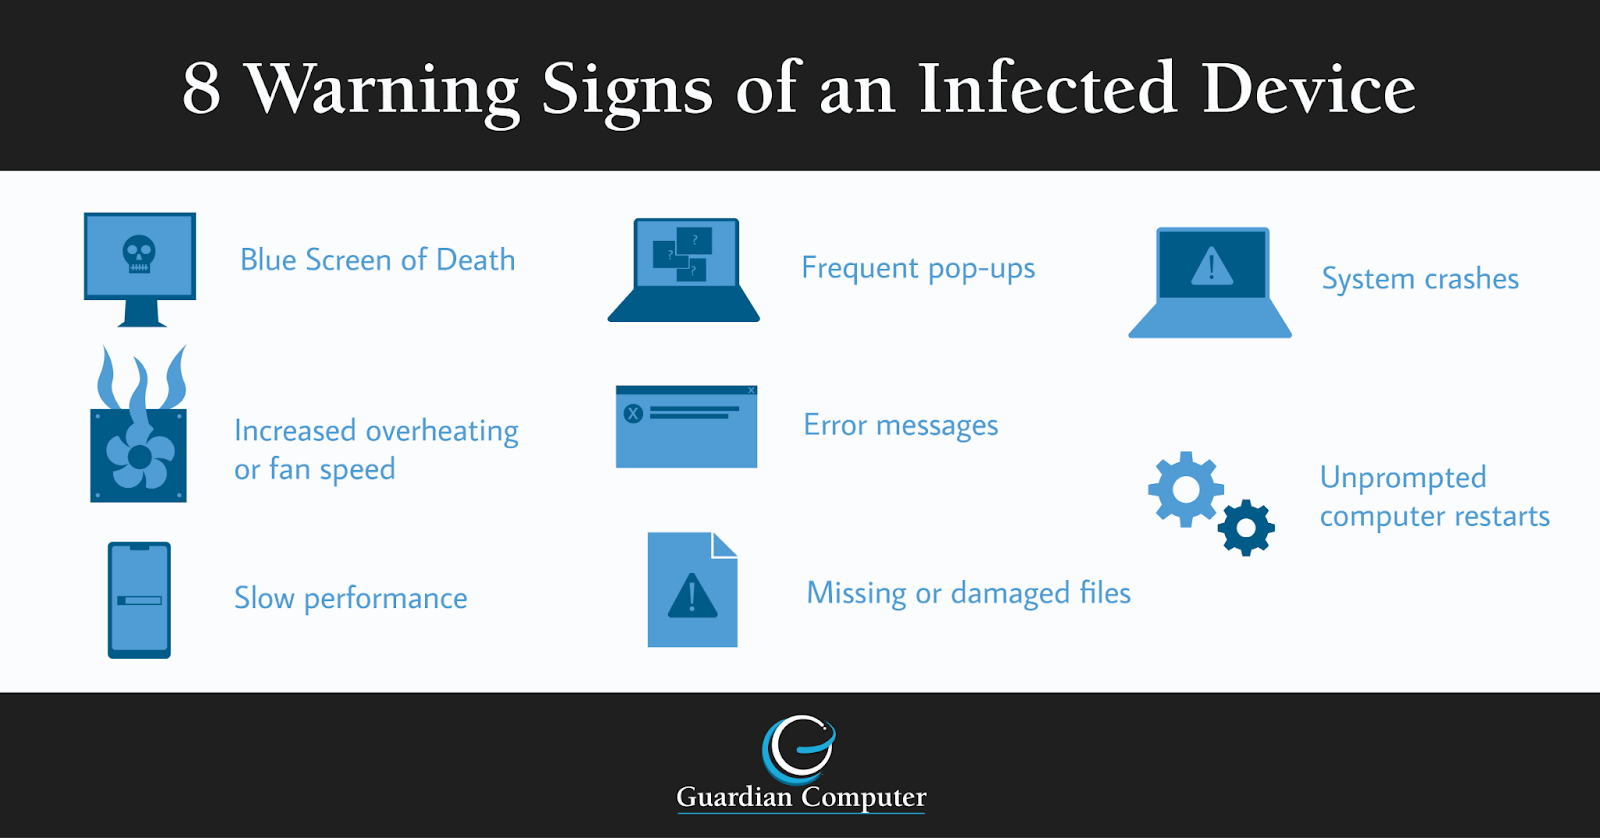 Prepare yourself against computer virus myths by reading about the common warning signs of an infected device in our infographic or in the rest of our blog post.